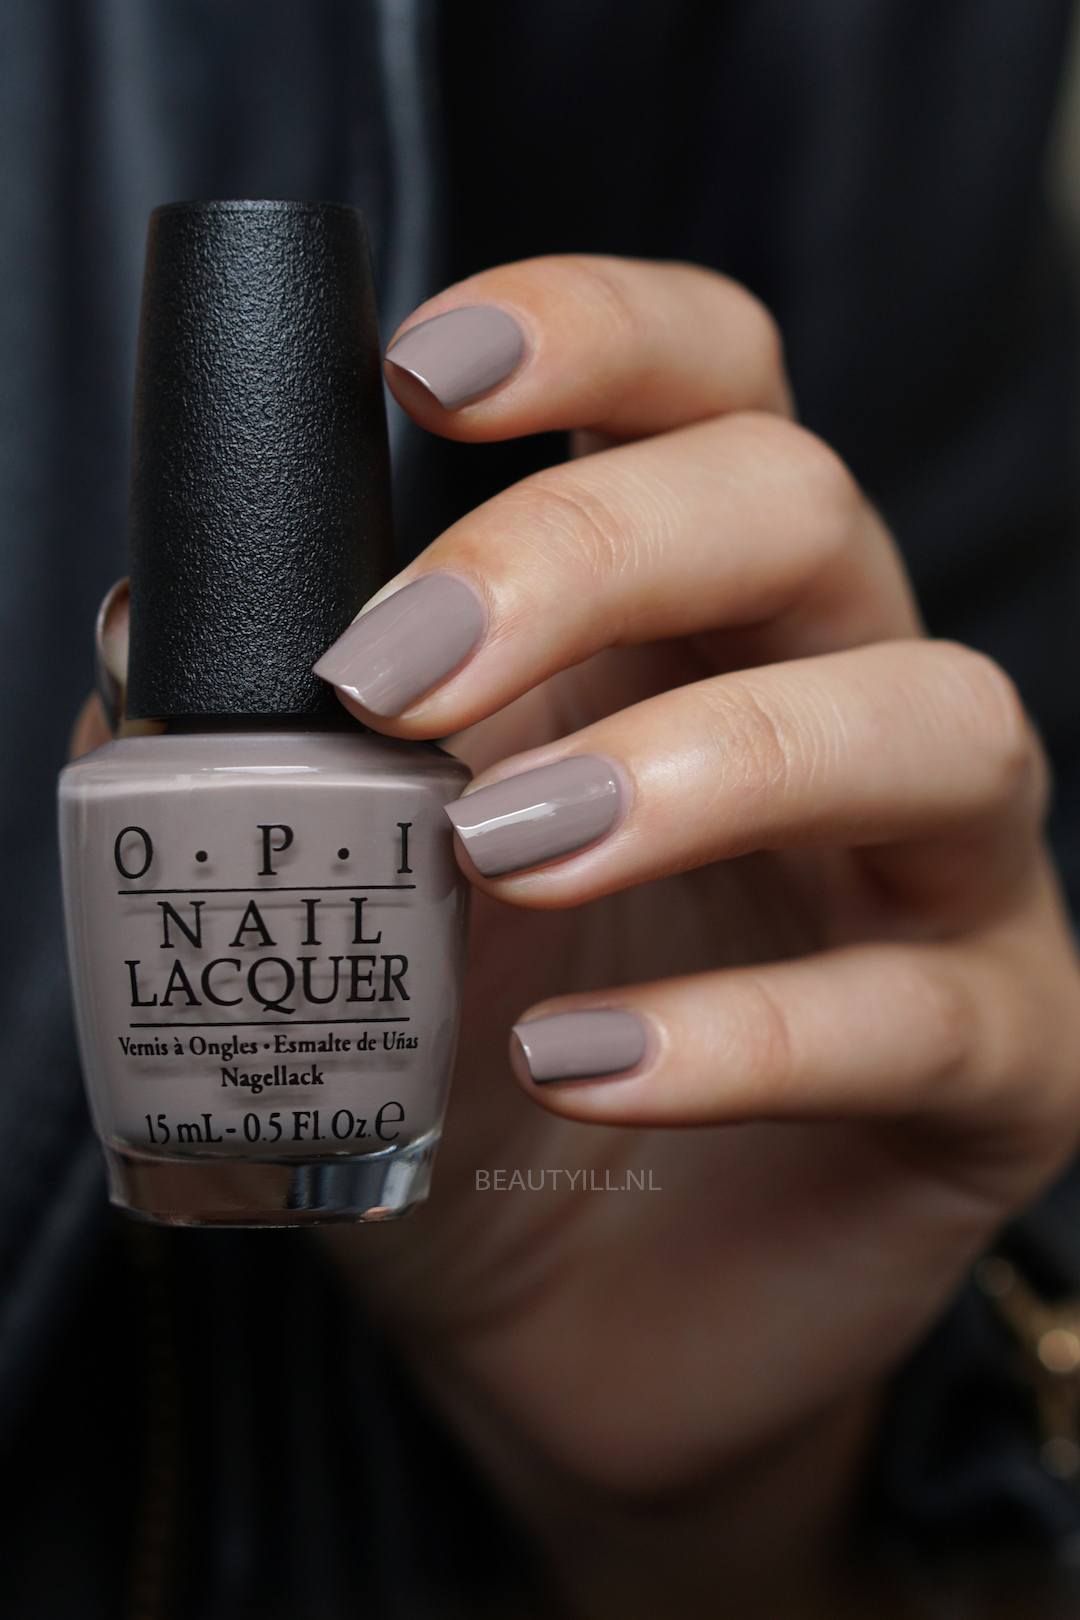 OPI Icelanded a Bottle of OPI